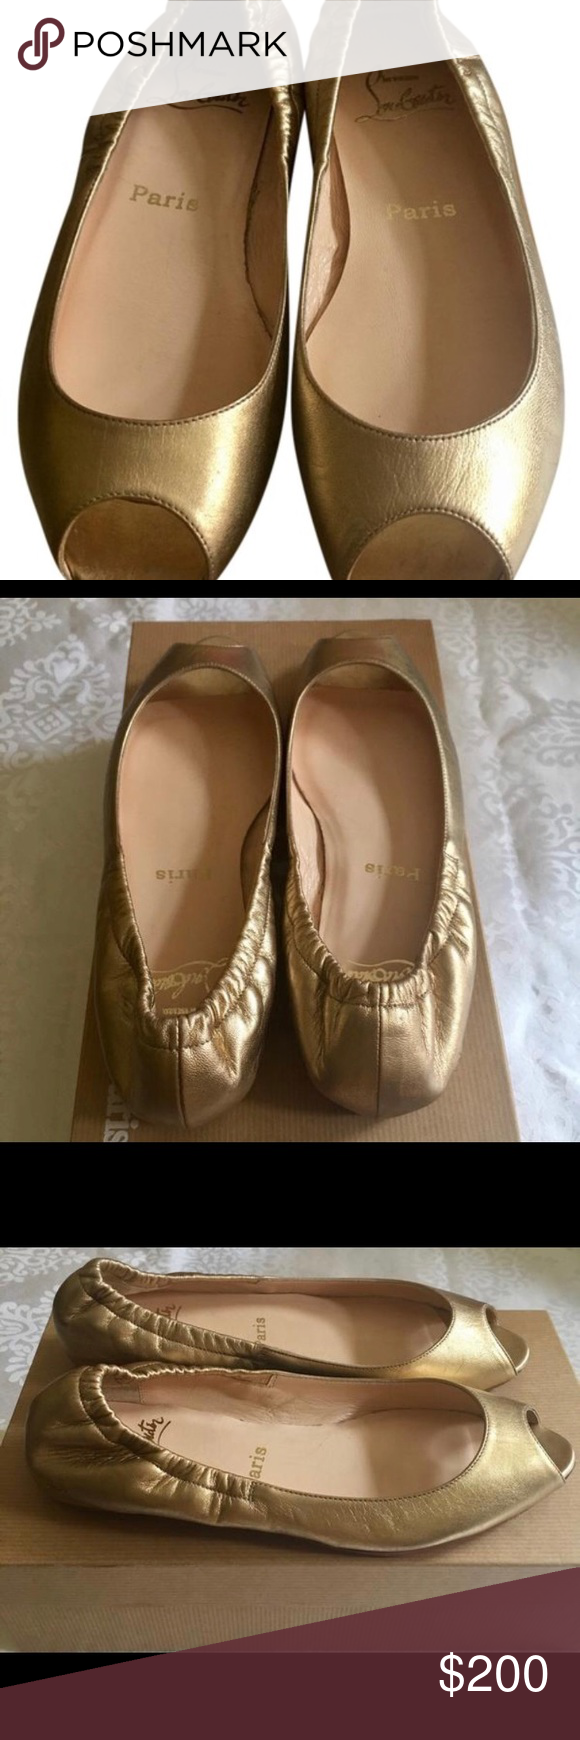 444ab000125b ... where can i buy authentic gold christian louboutin flats 3c3eb 8be13